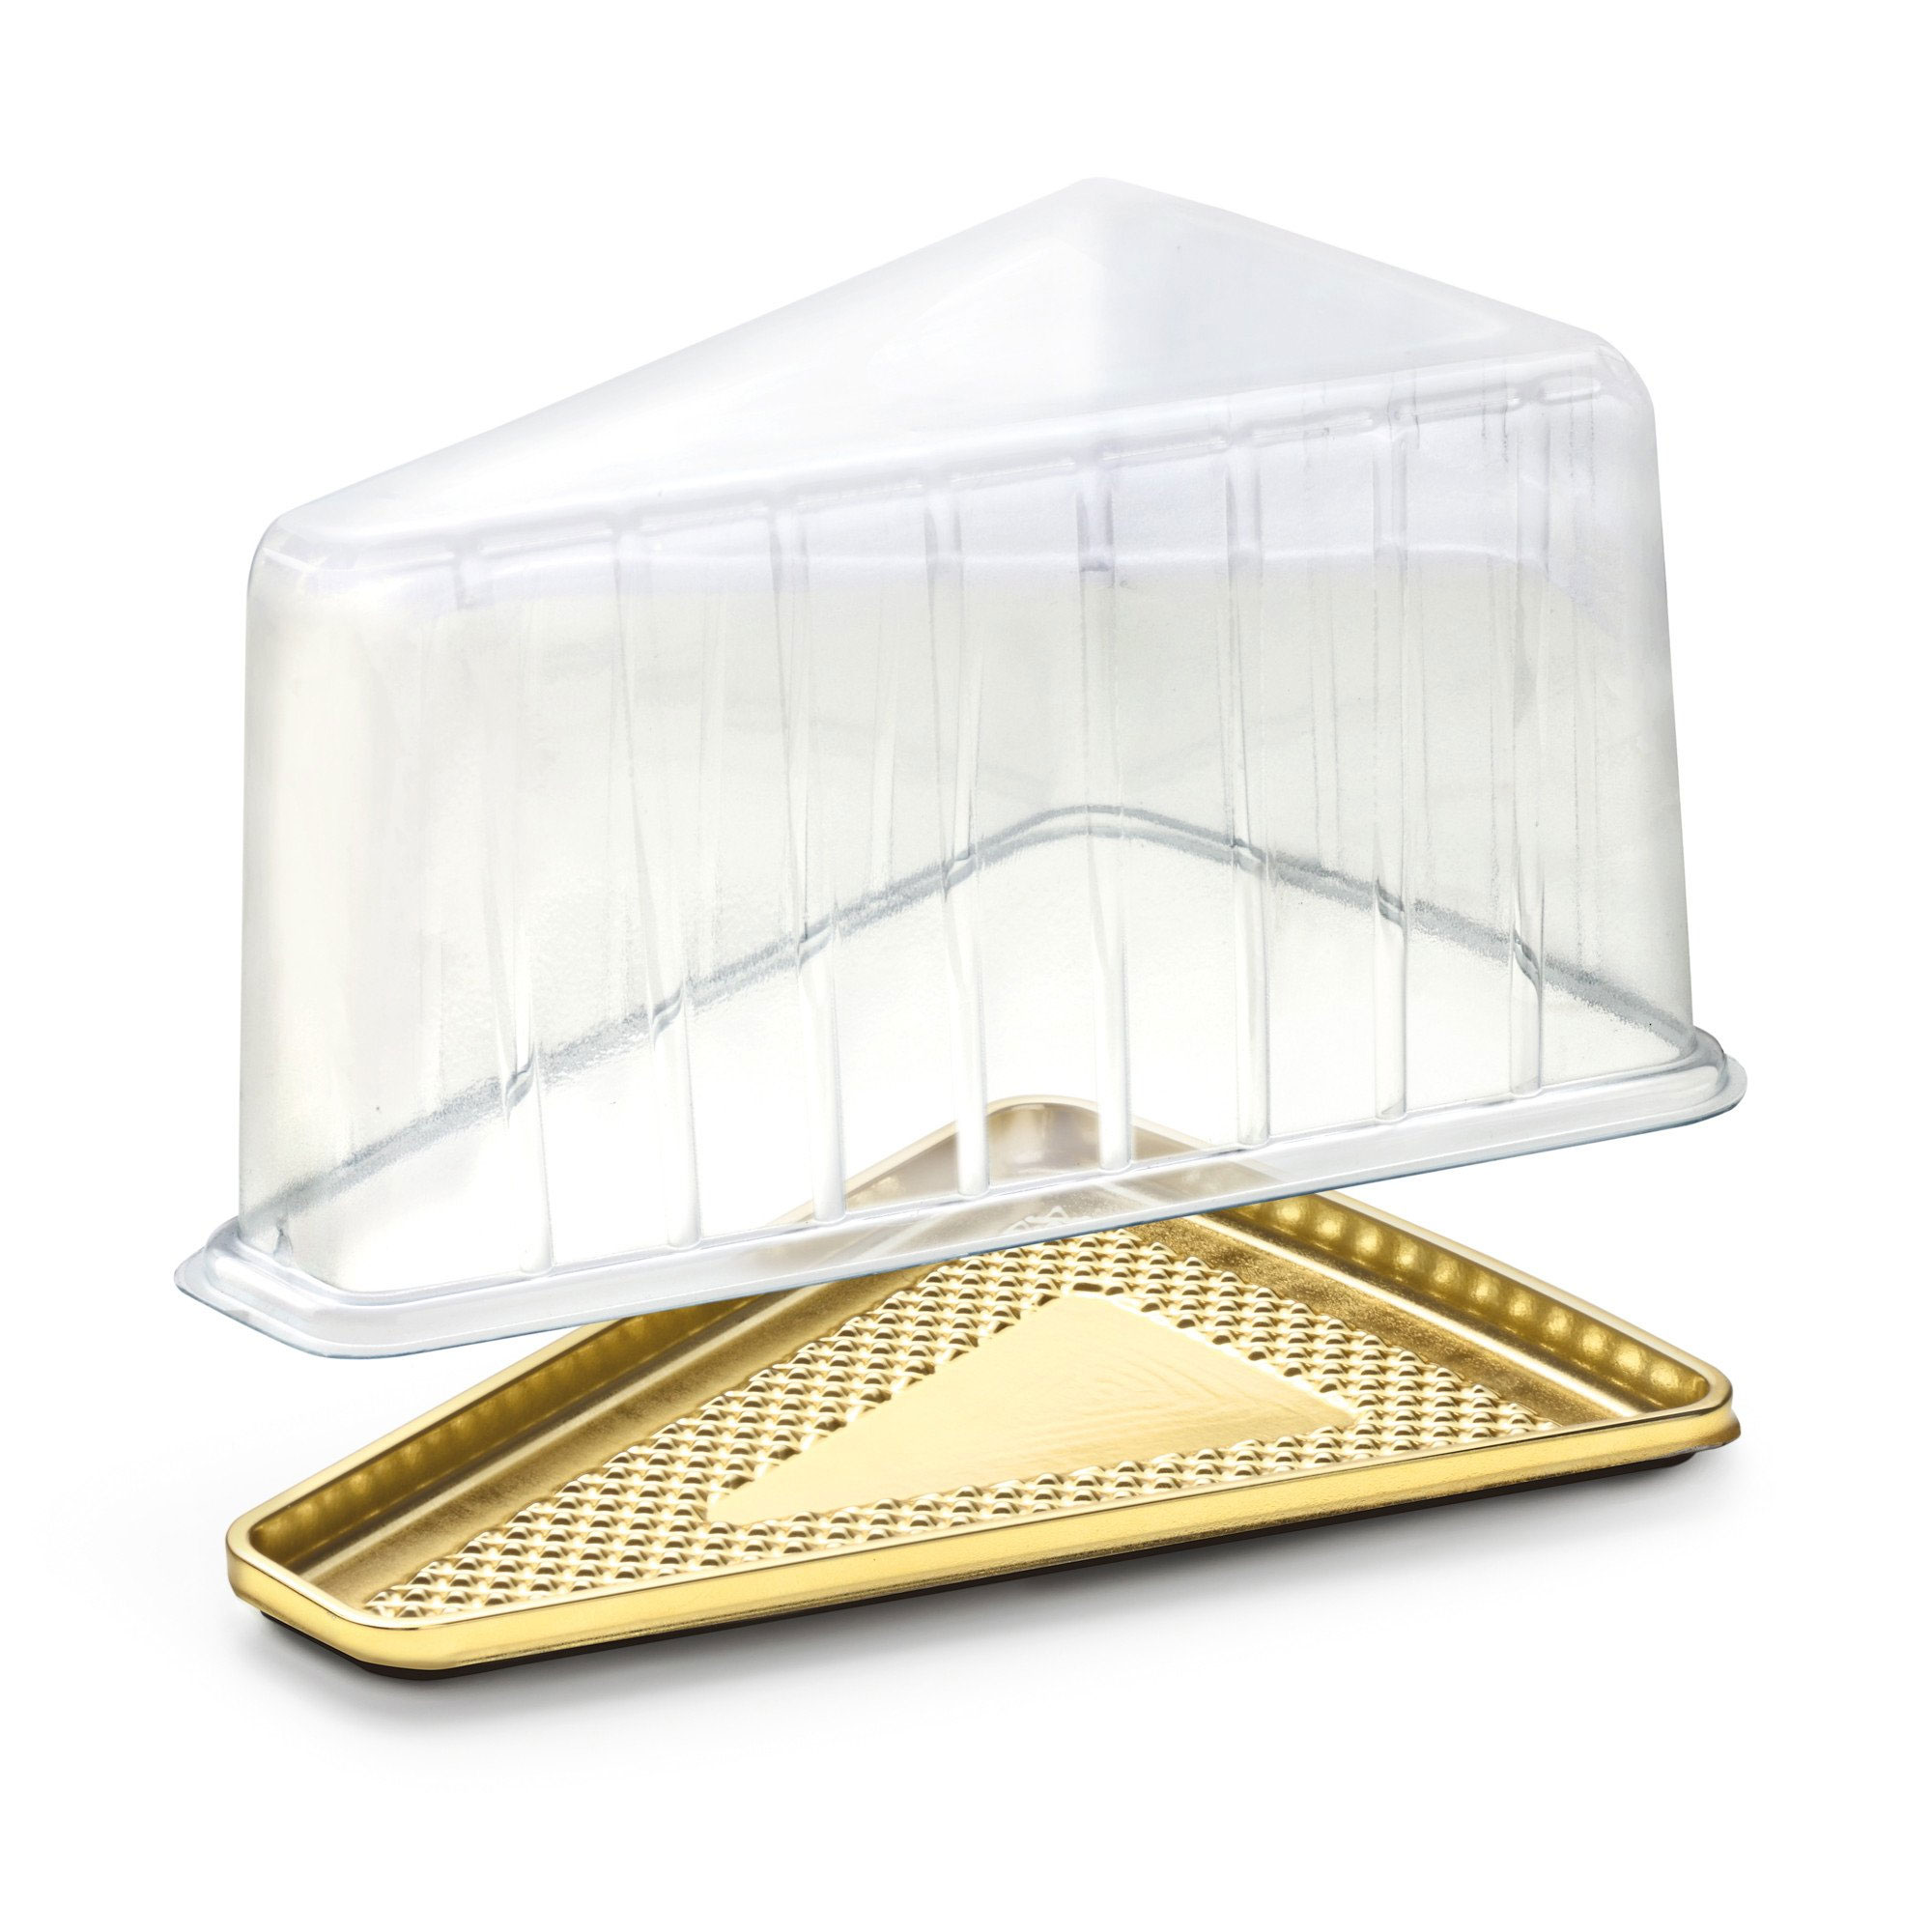 "6.3""l x 4.8""W x 3.2""H Dome Lid for Medoro Gold Cake Slice Tray,Case of 400"